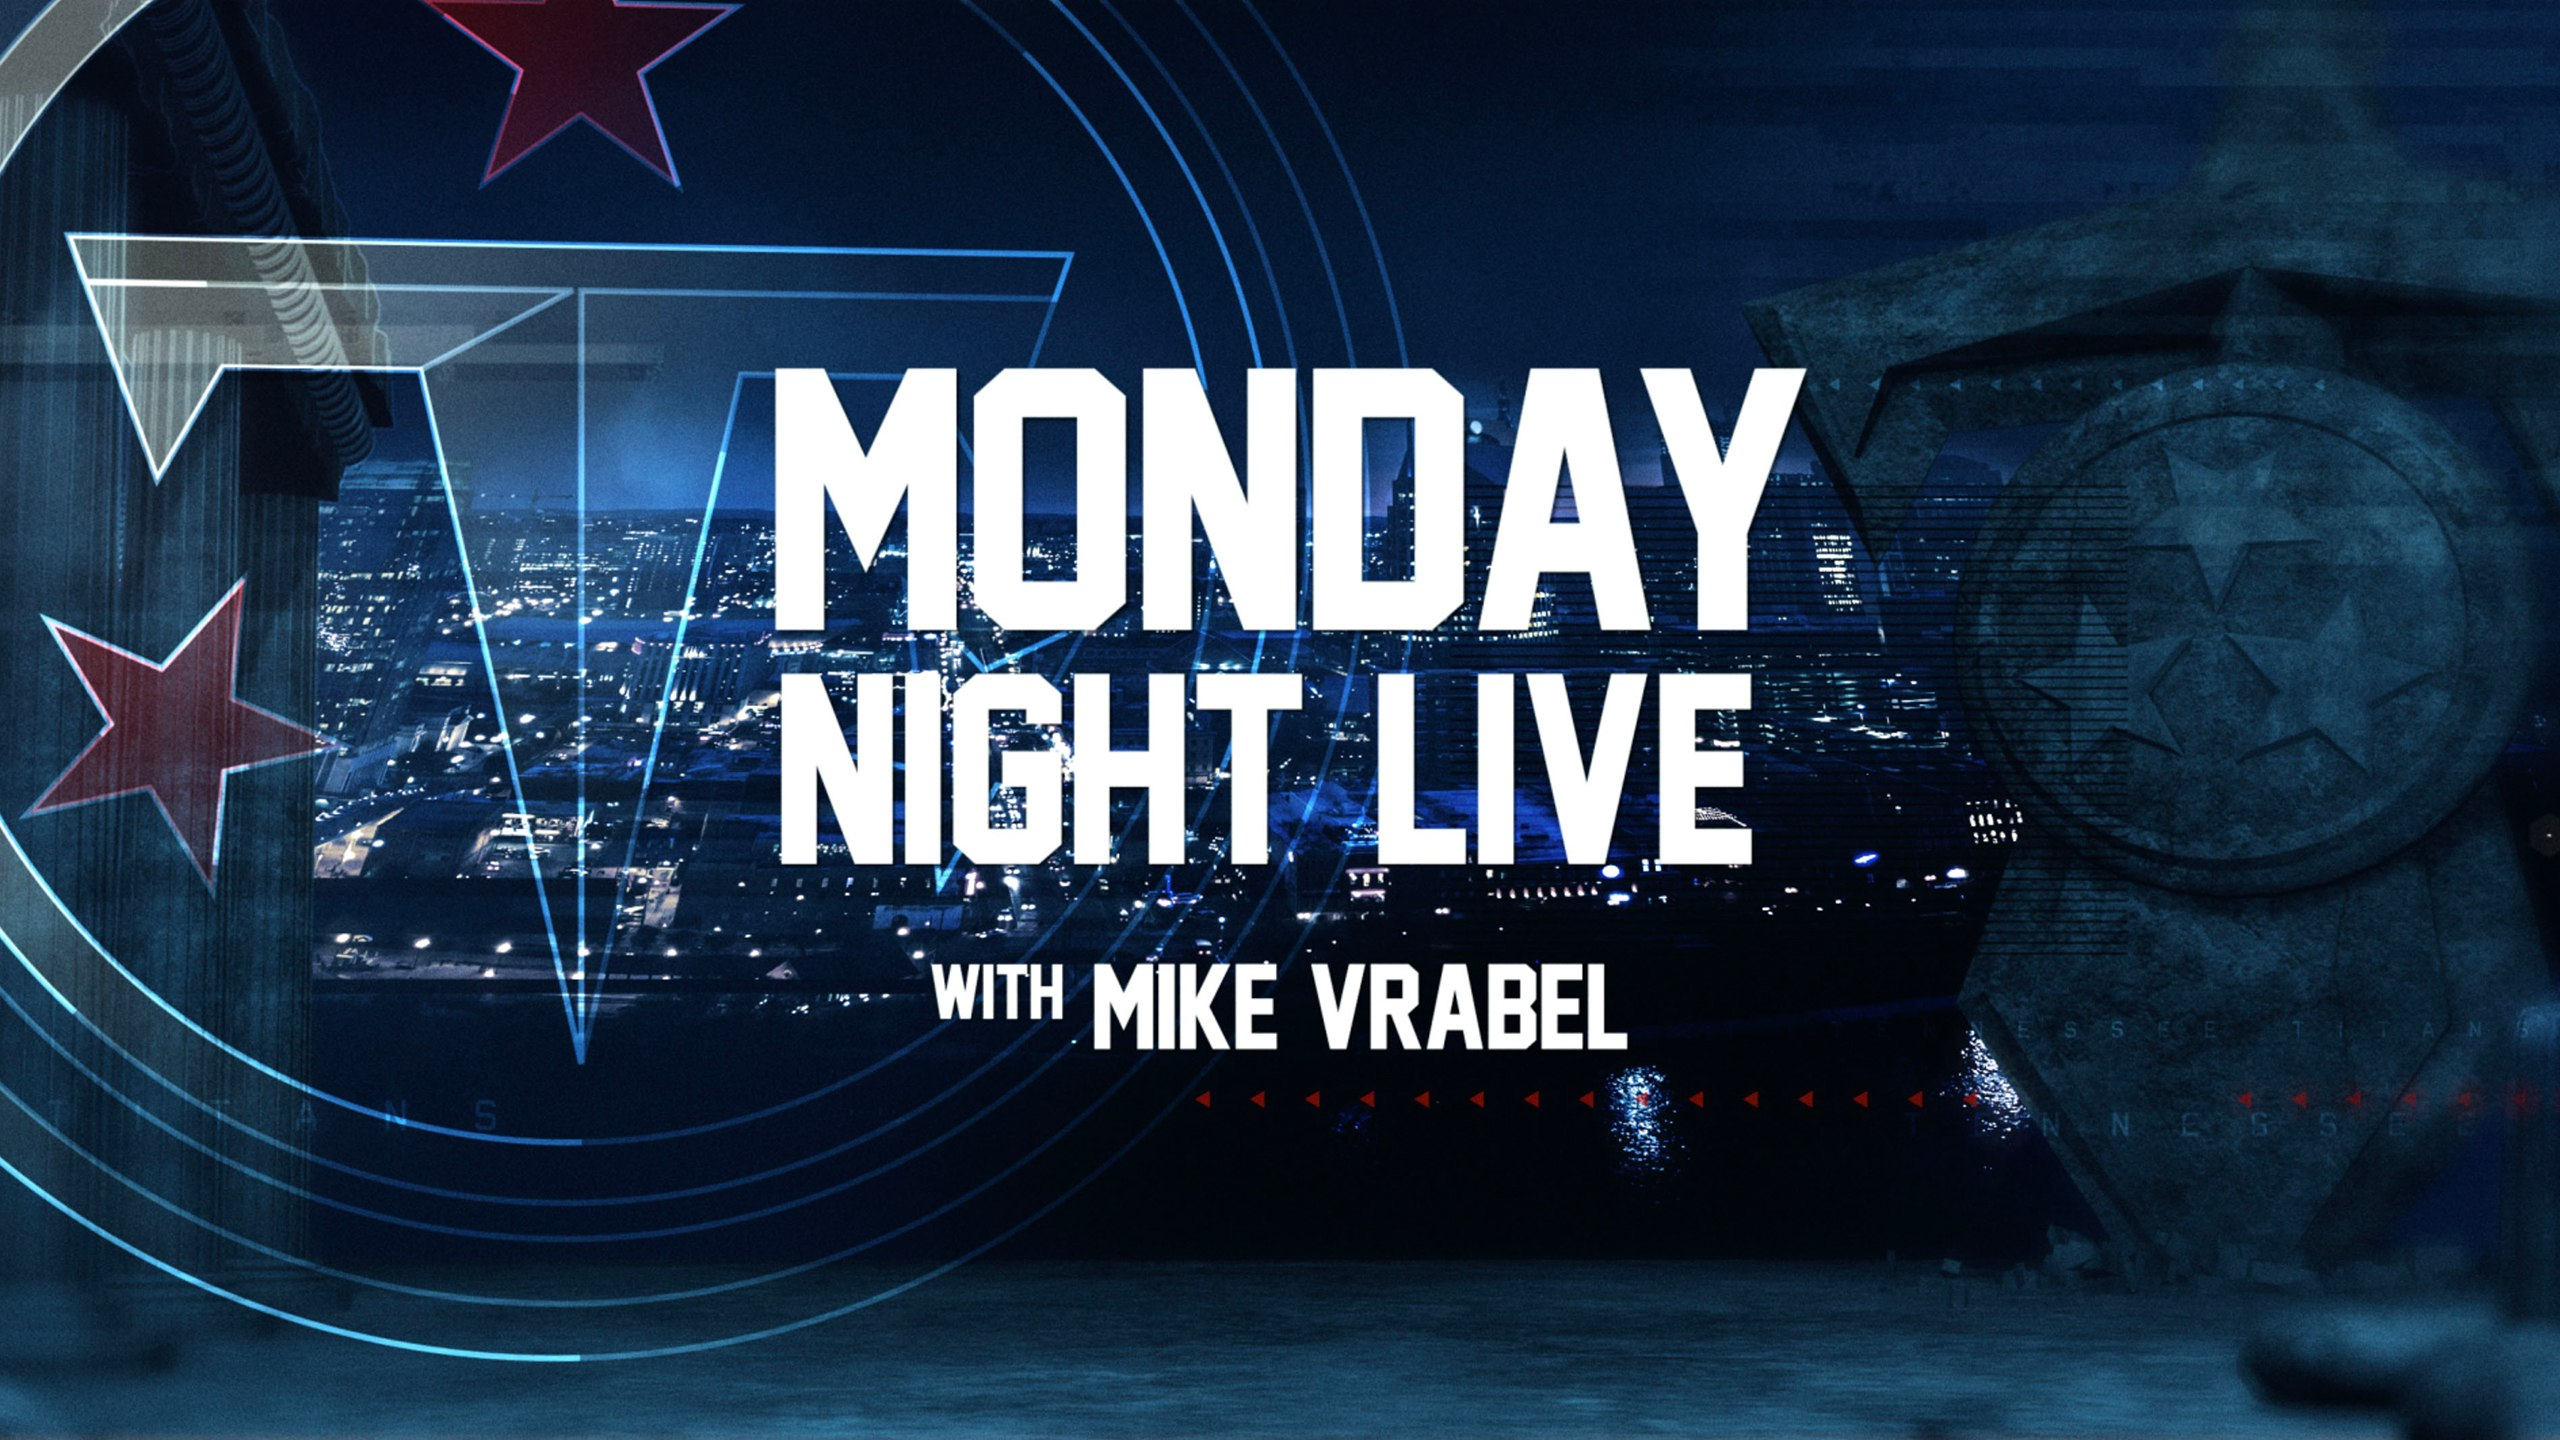 Monday Night Live with Mike Vrabel